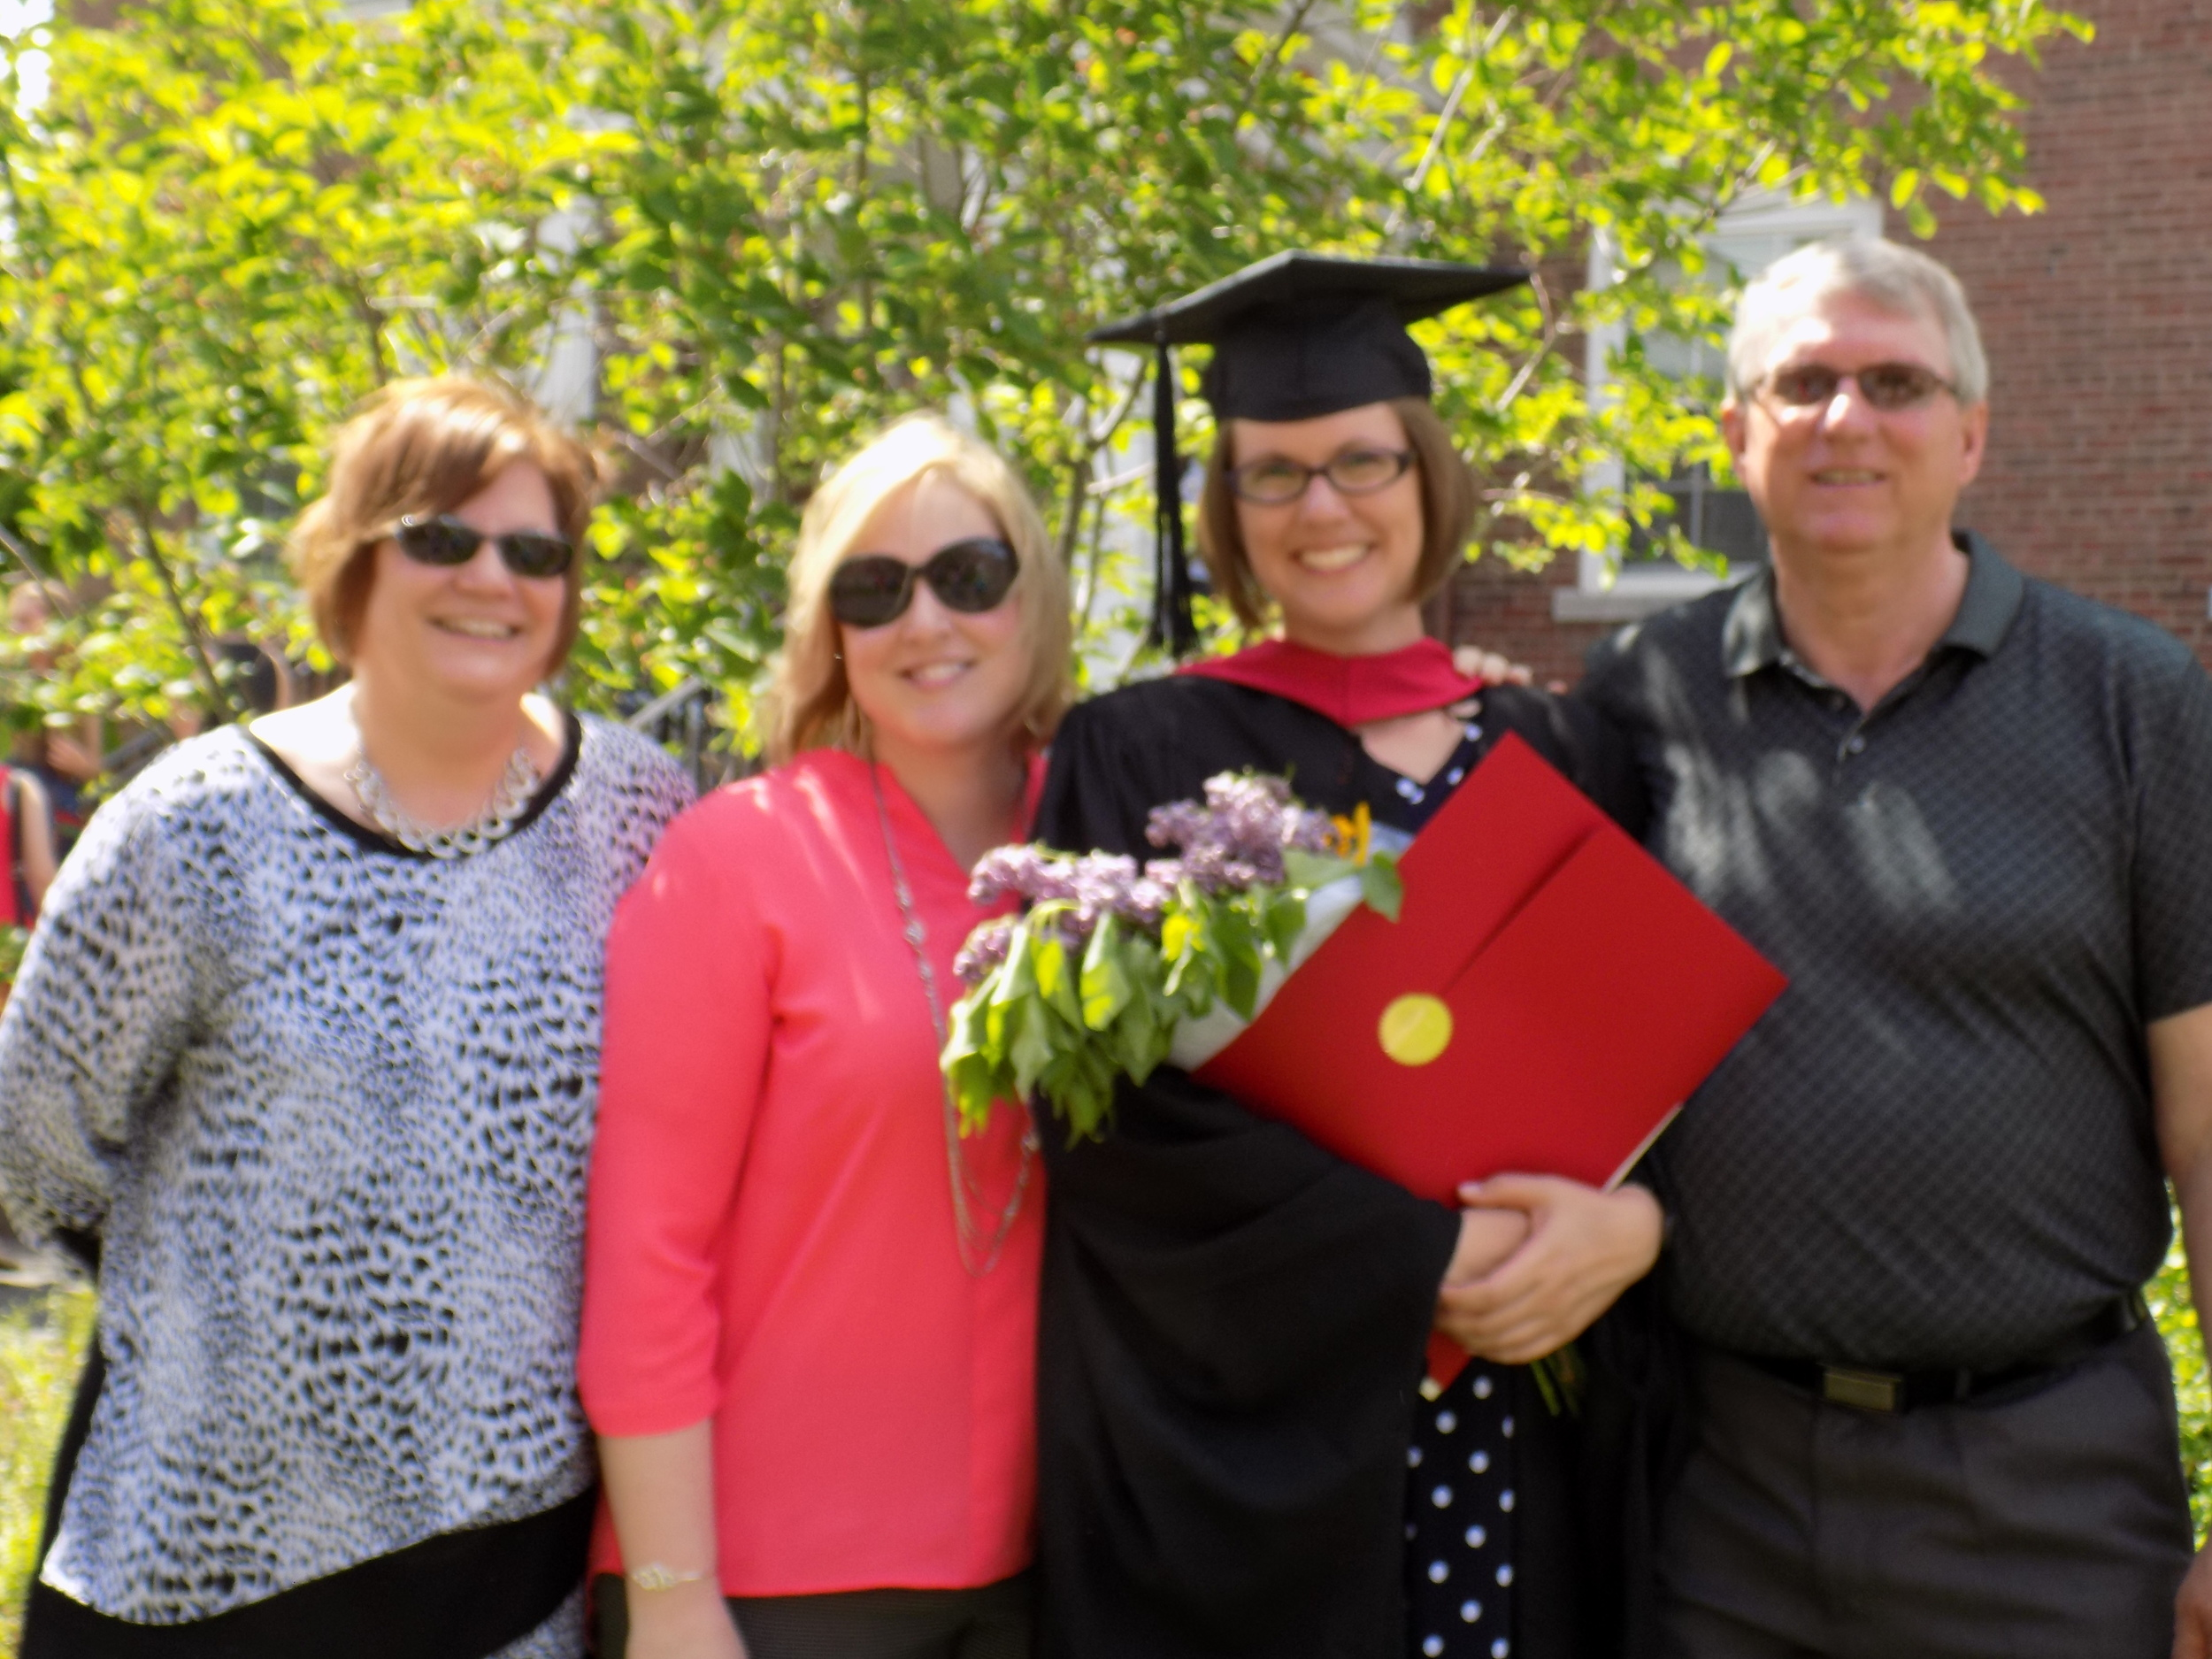 All smiles from my family after the HGSE graduation ceremony.